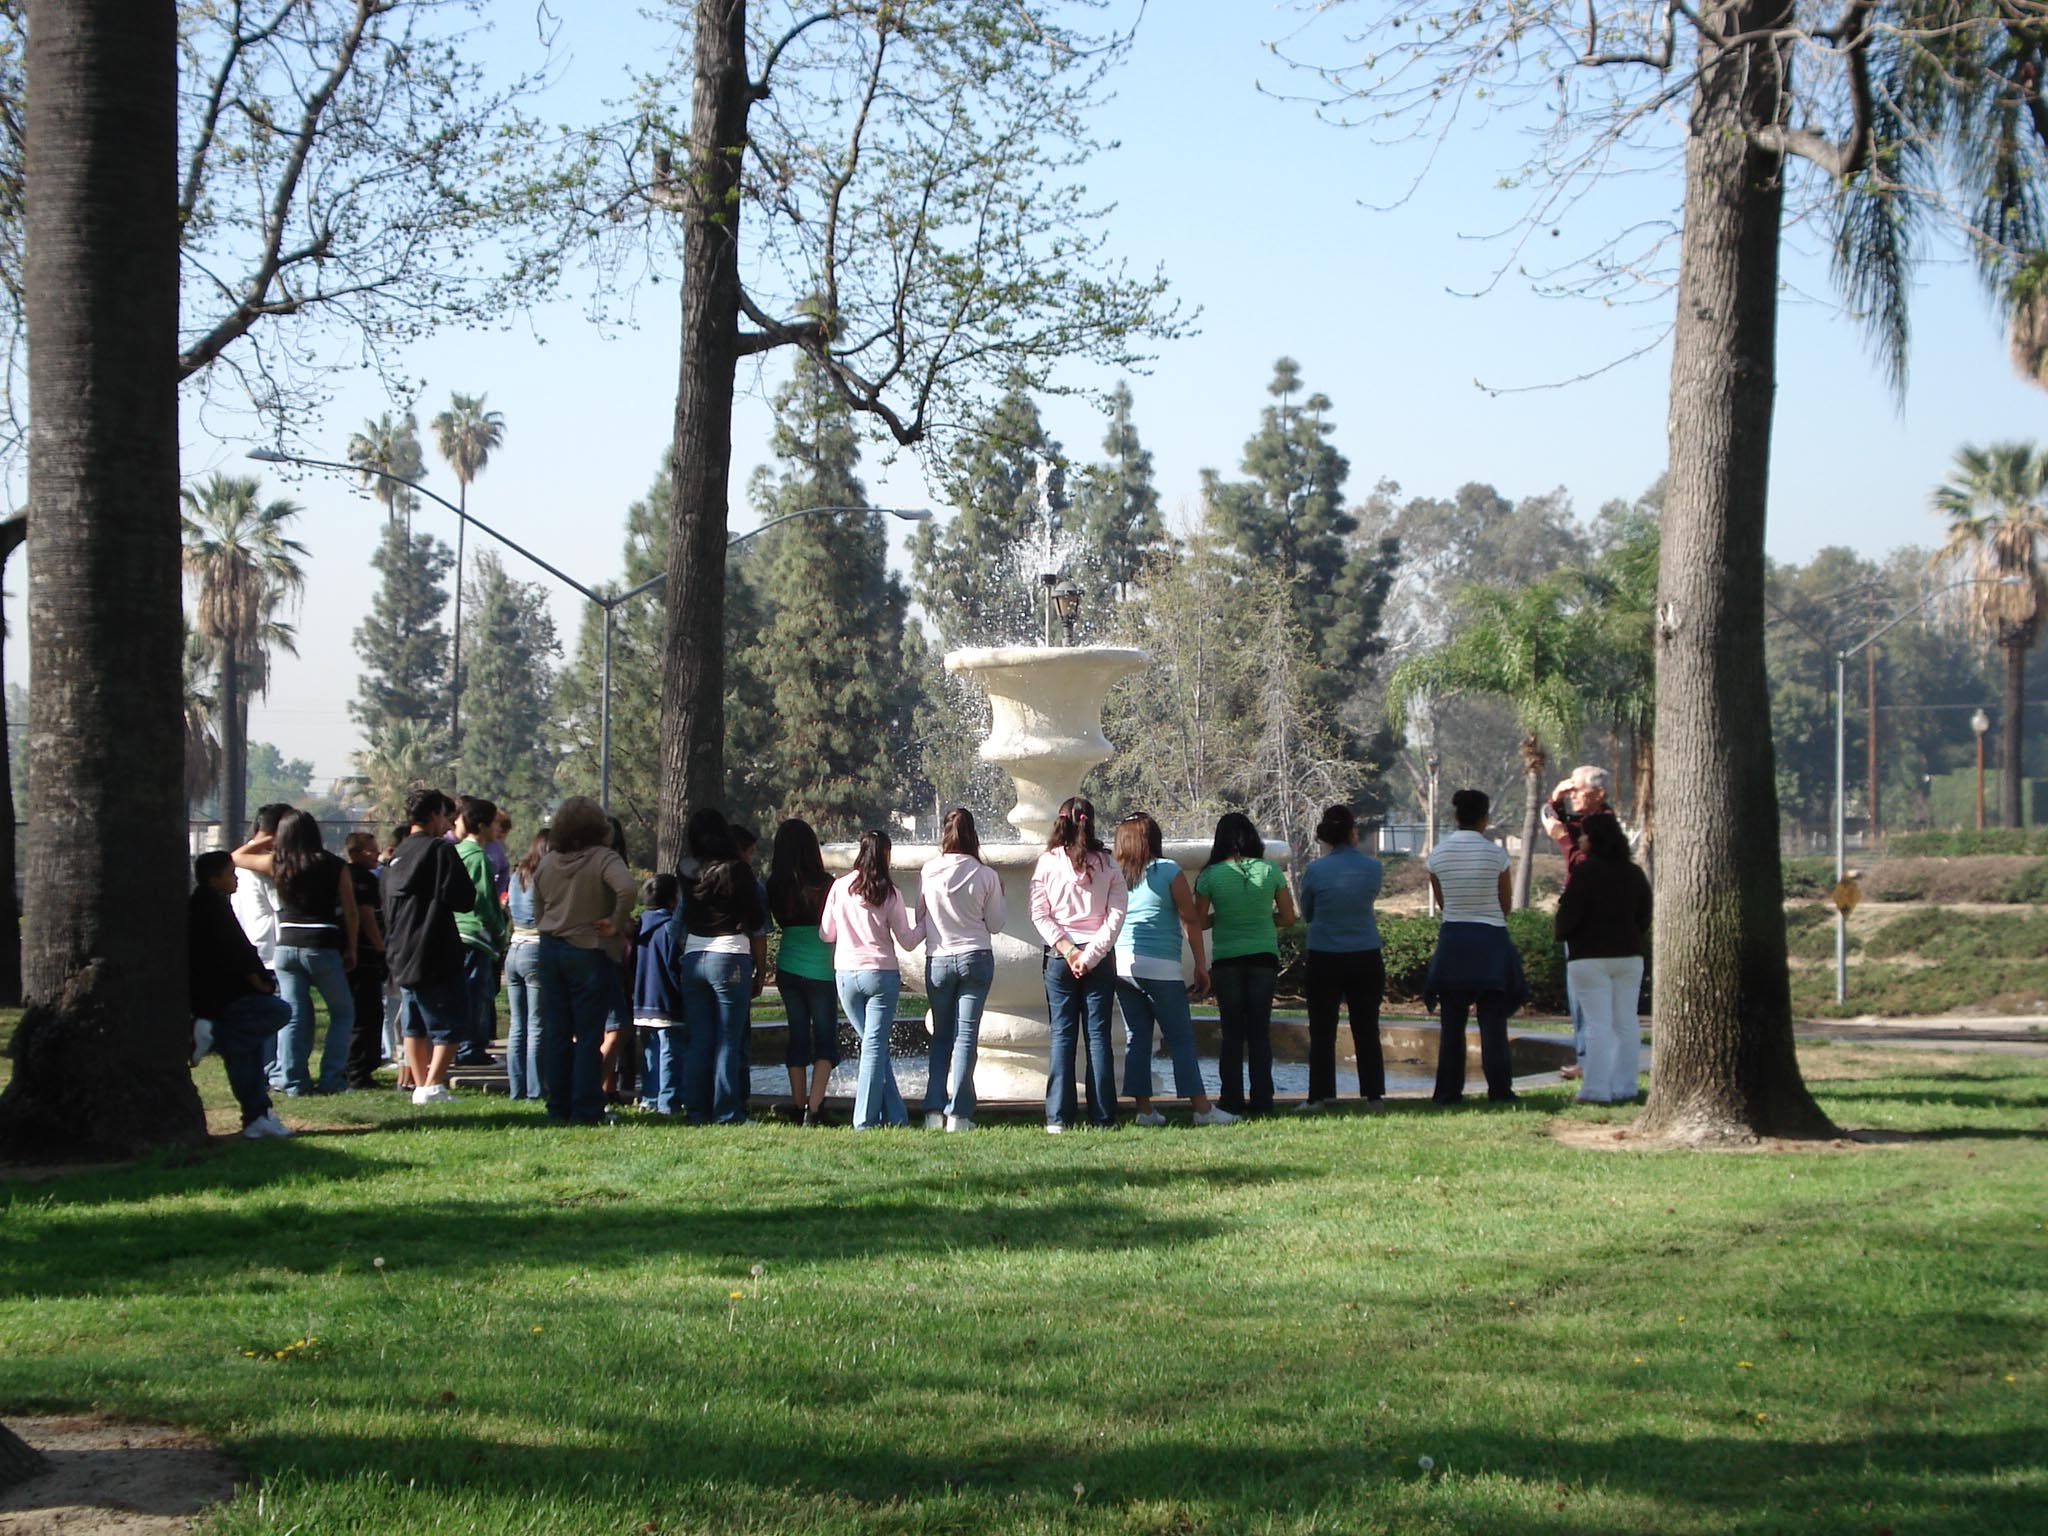 High school students viewing the restored Frankish Fountain in Ontario, California